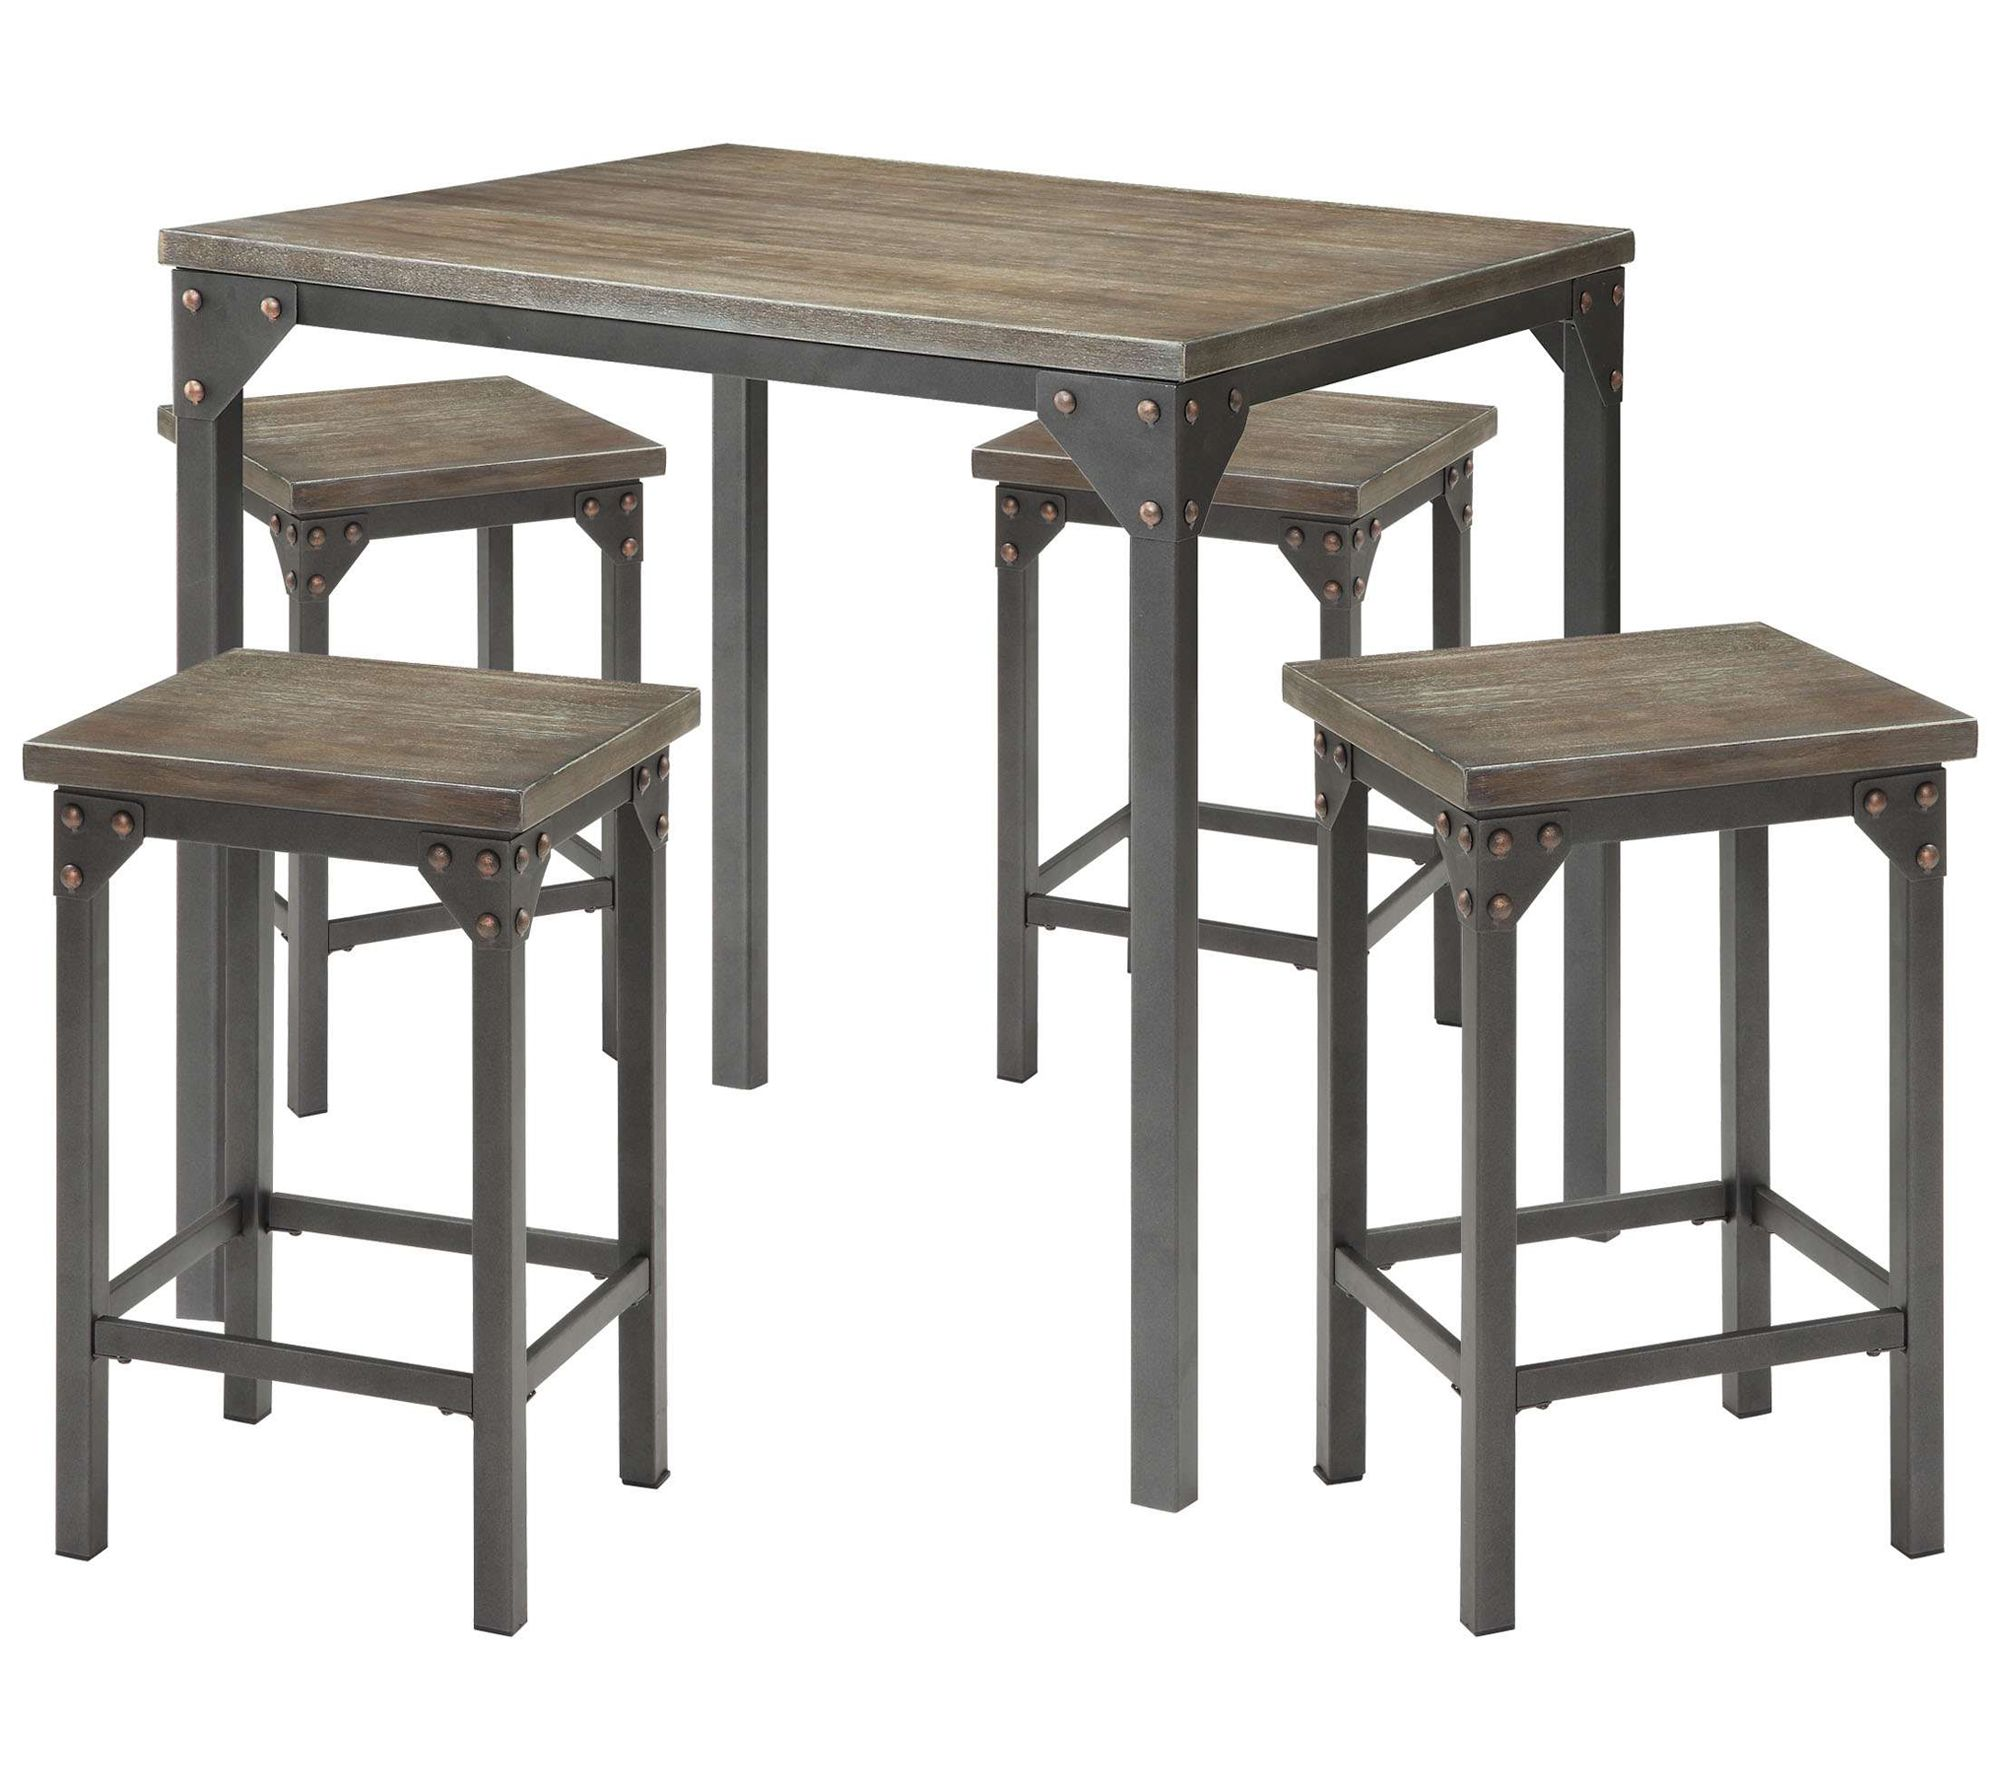 Acme Furniture Percie 11-Piece Counter-Height Dining Set - QVC.com